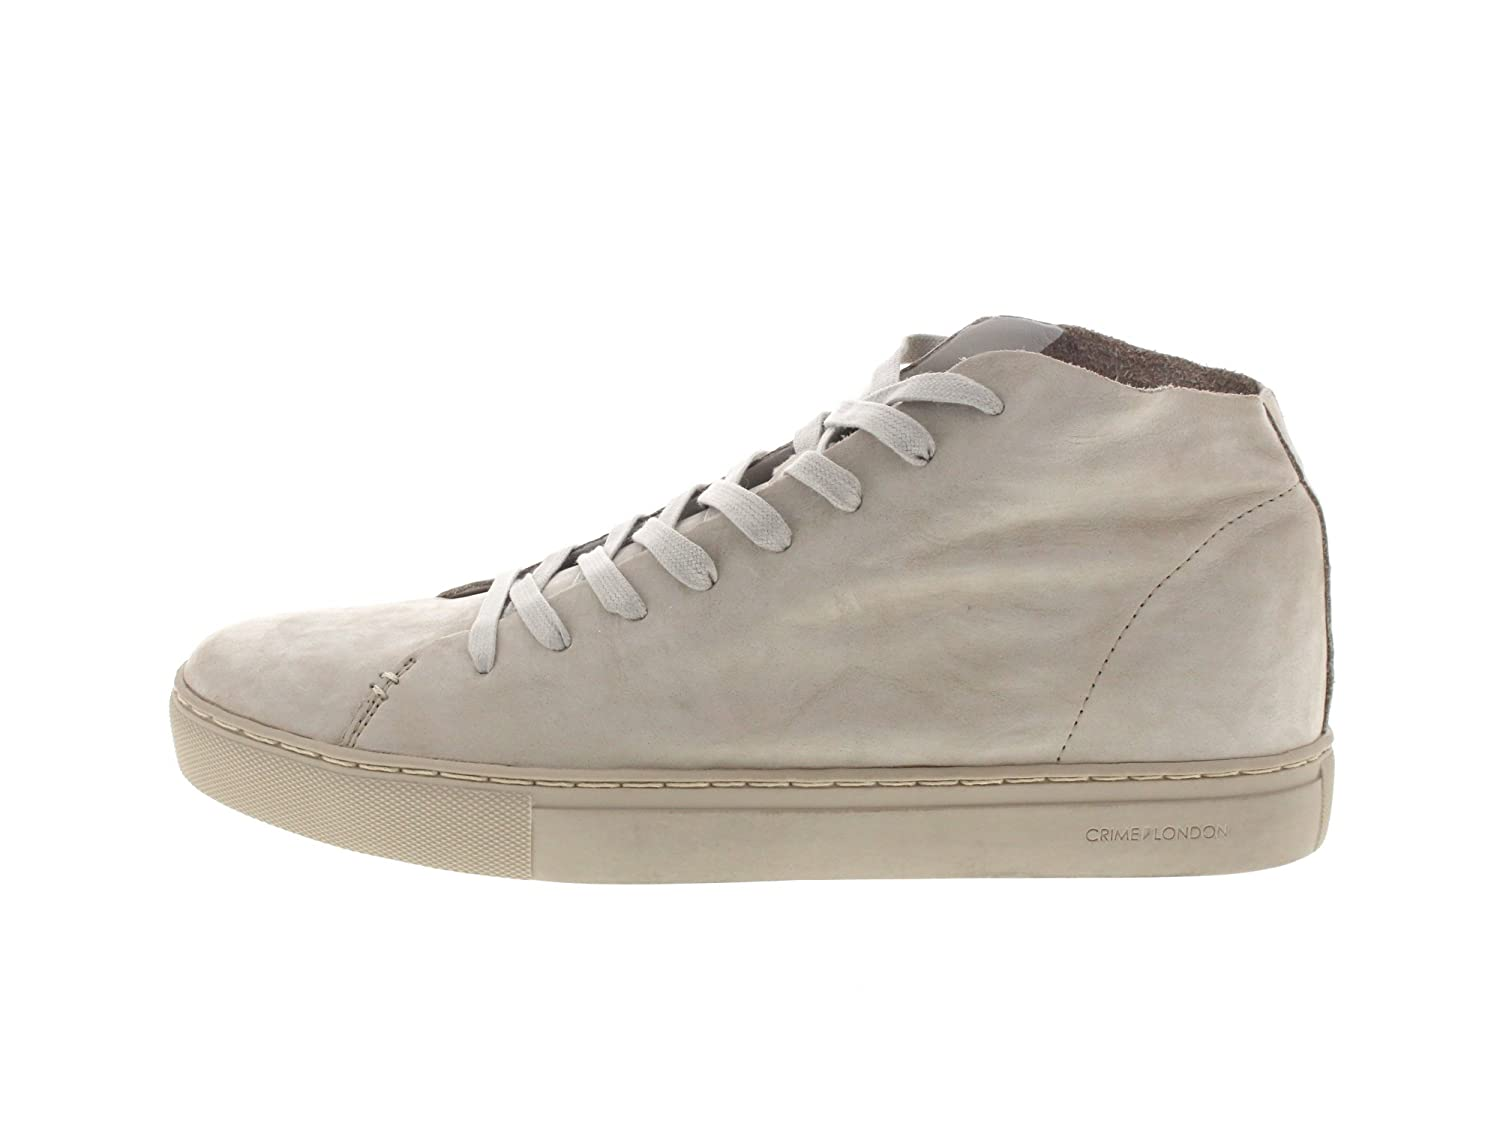 43e3194bca06db Crime London Sneaker 11292S17B - Taupe  Amazon.co.uk  Shoes   Bags